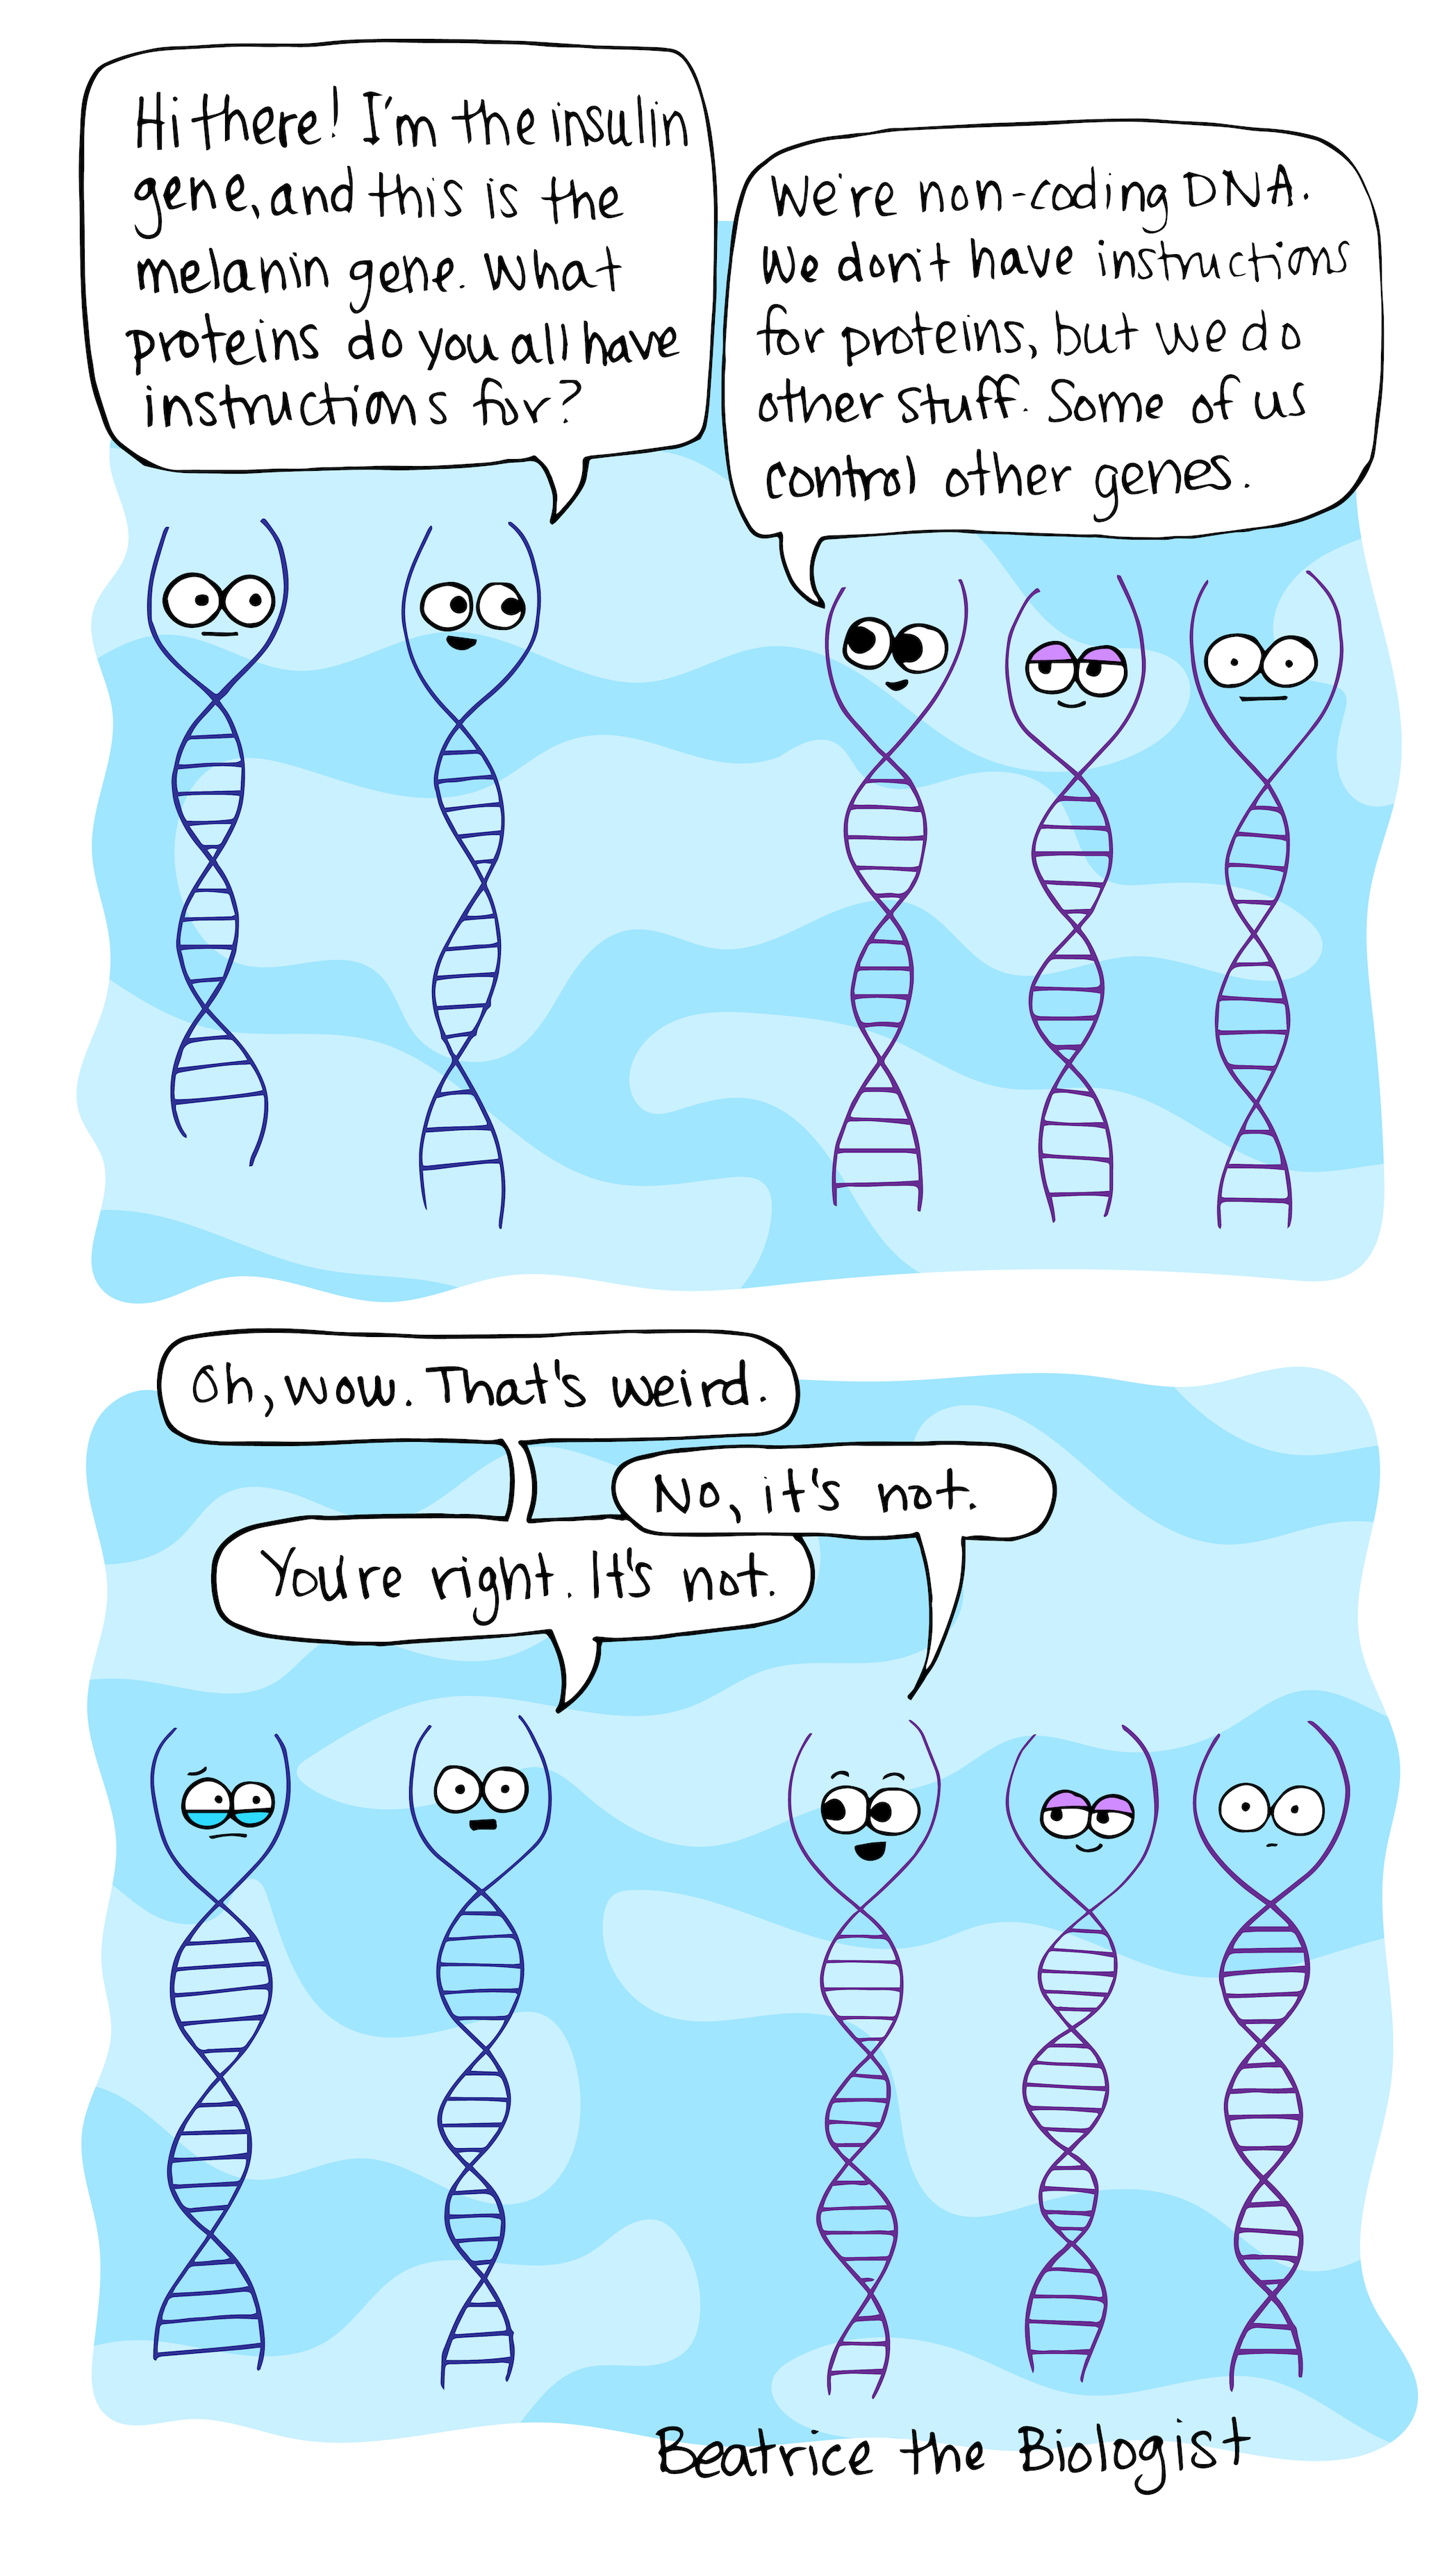 Hi there i'm the insulin gene and this is the melanin gene. What proteins do you all have instructions for? We're non-coding DNA. We don't have instructions for proteins, but we do other stuff. Some of us control other genes. Oh, wow. That's weird. No, it's not. You're right it's not. DNA comic